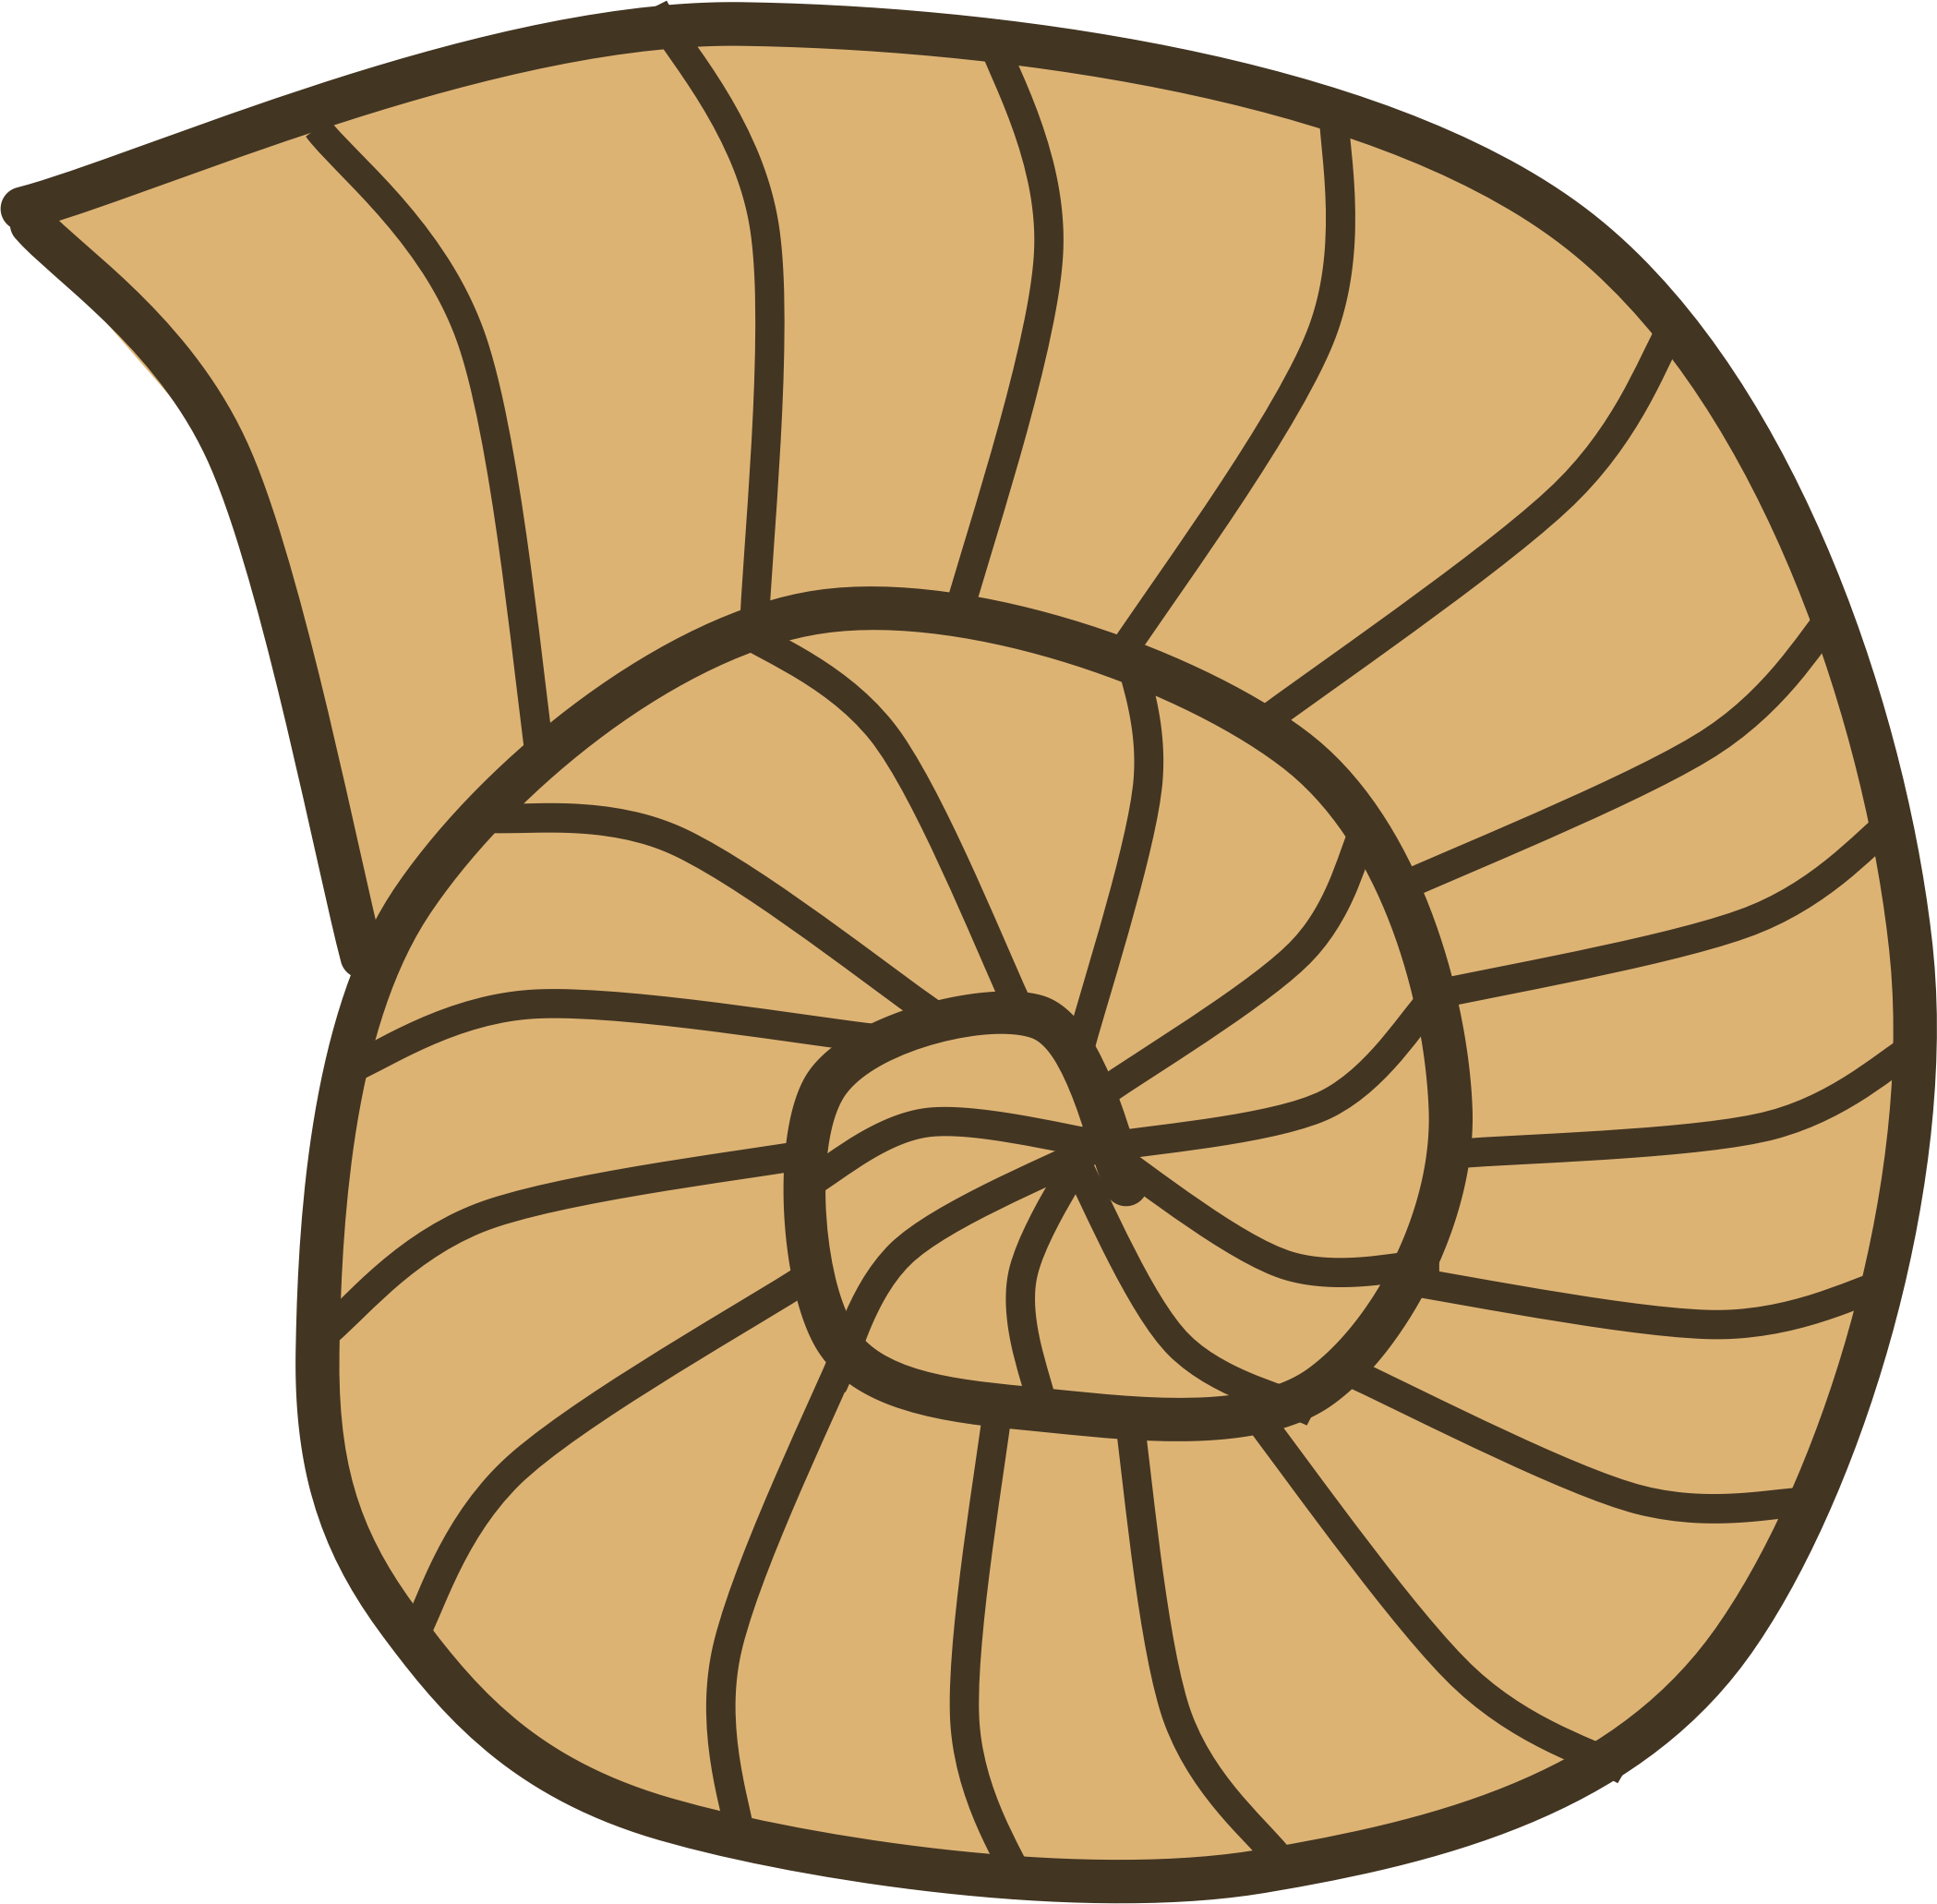 Snail Shell by Scout